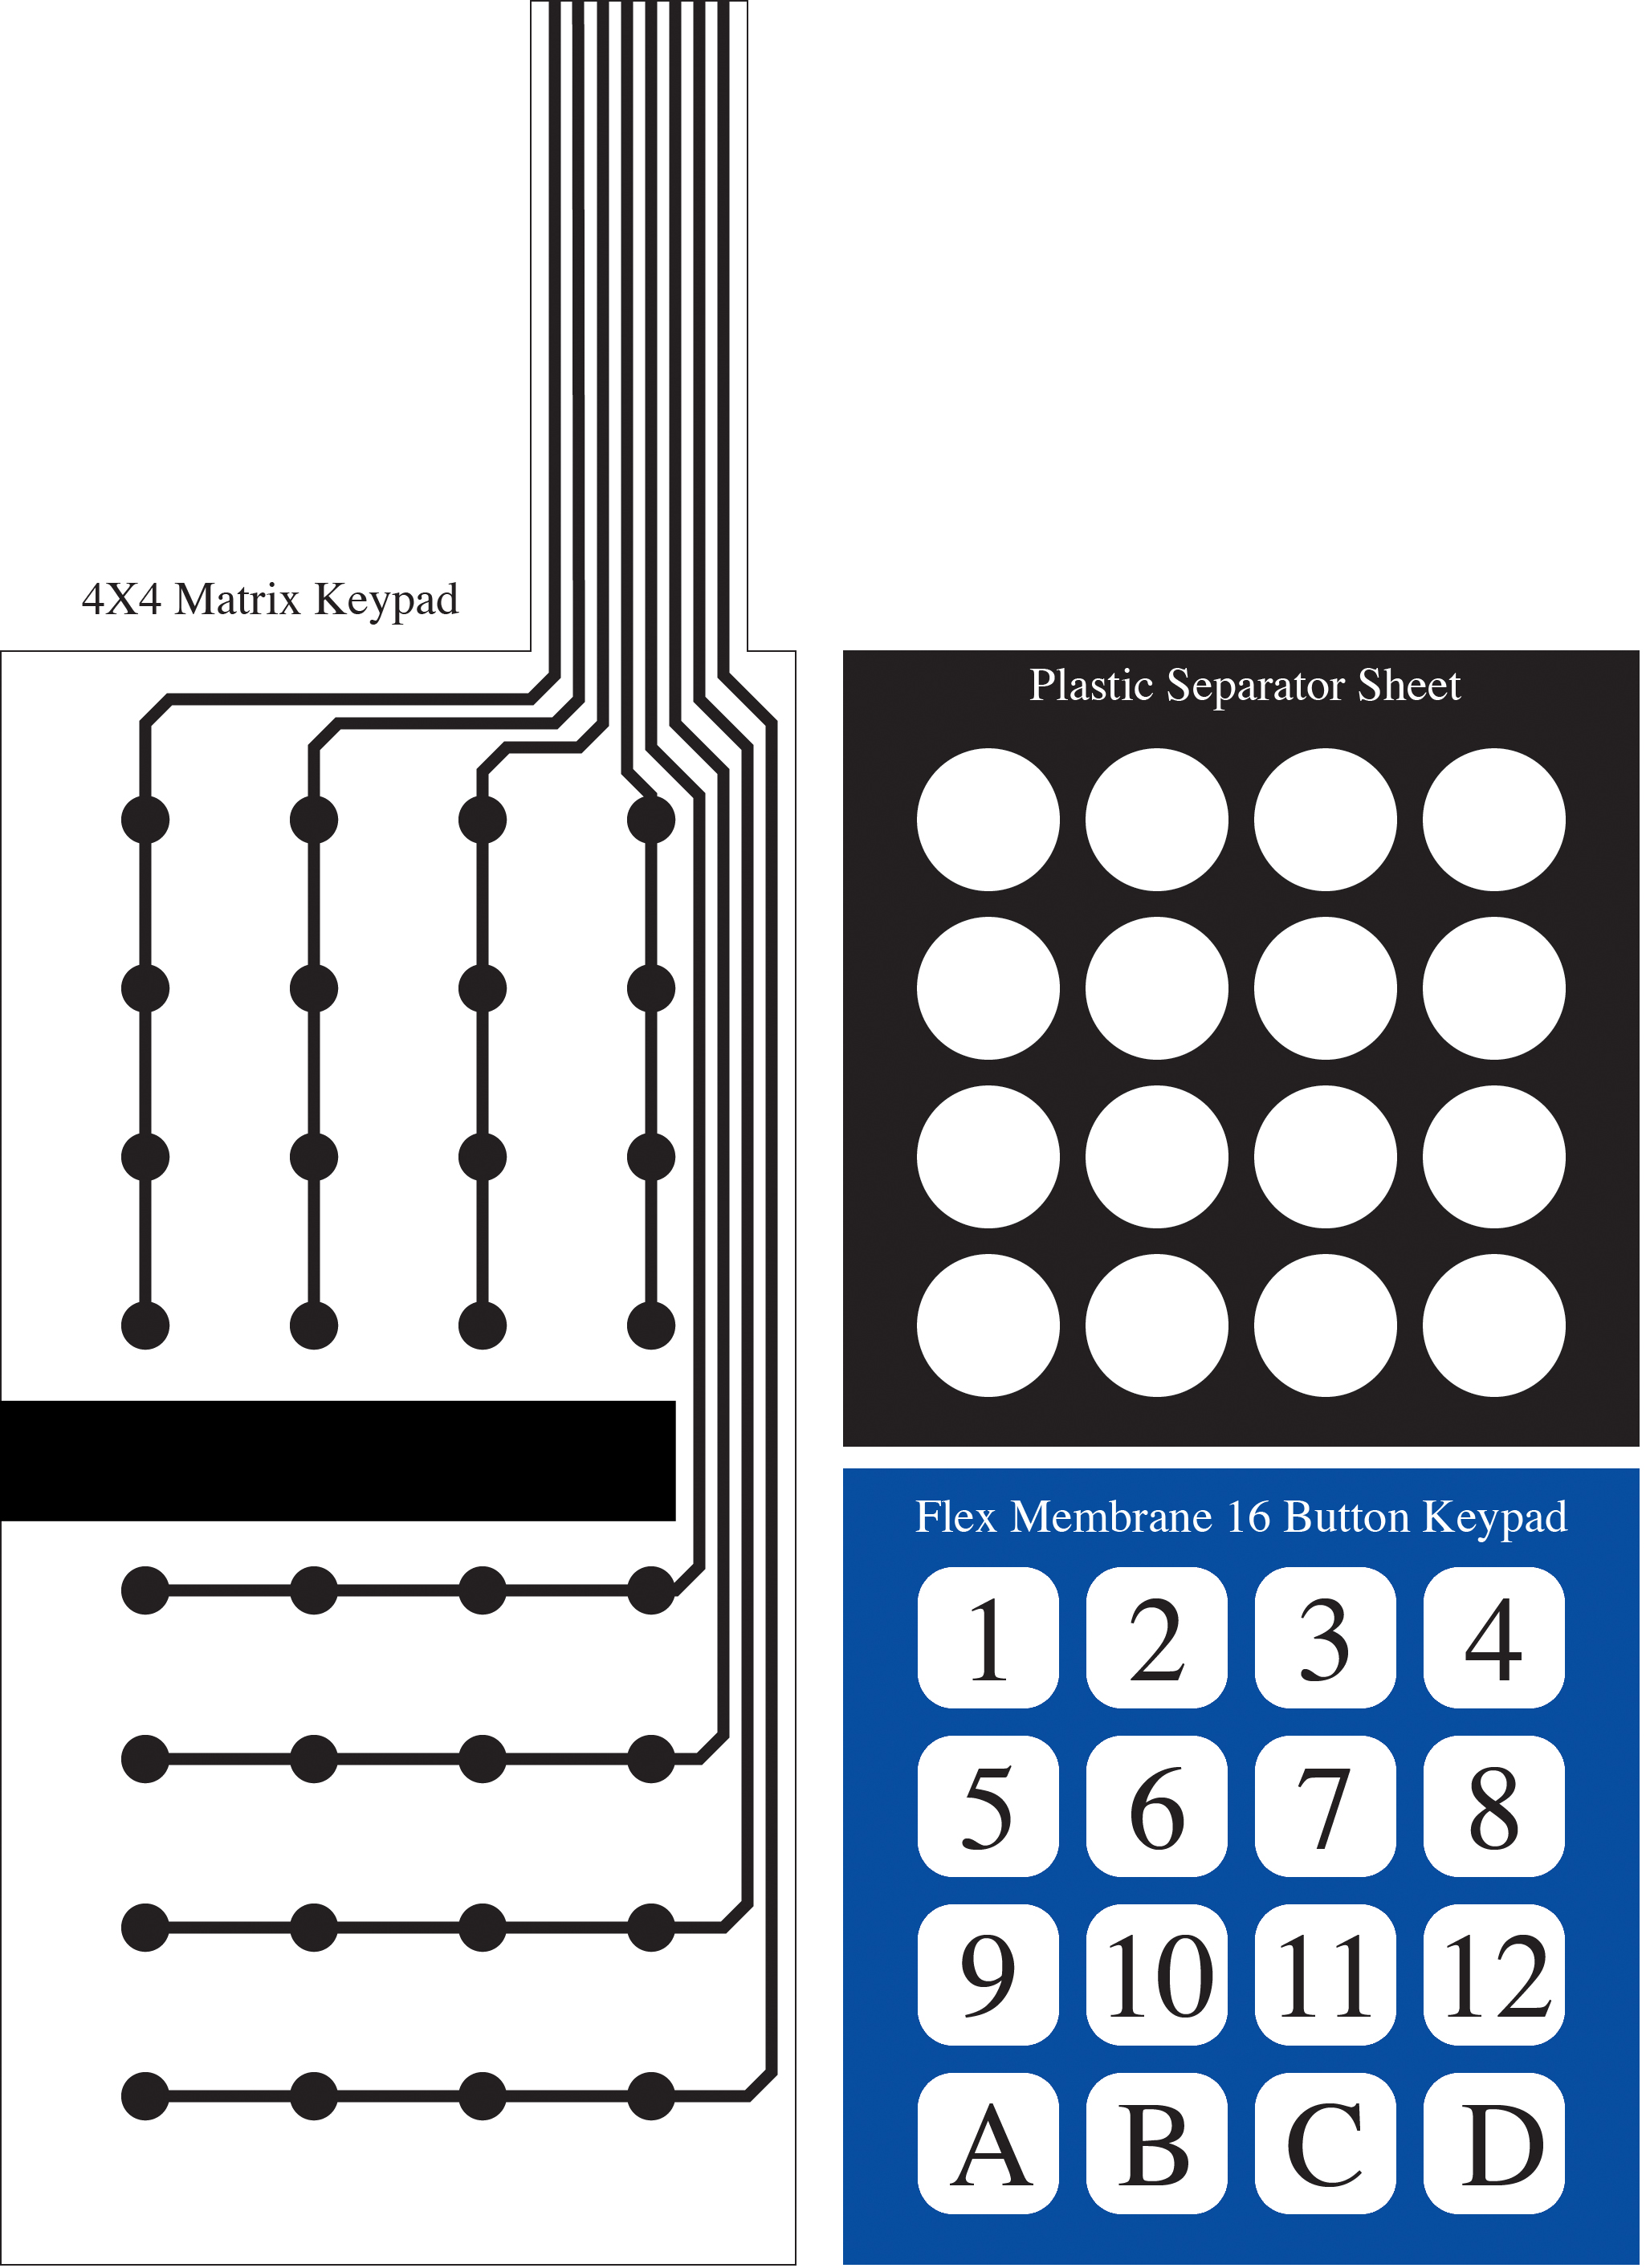 Pcb Fab In A Box The 8min Circuit Board System Layer Polimide Flexible Printed Manufacturers Custom Flex Membrane Keypads Can Be Made Using This Layout Folding It Half With Simple Spacer Out Of Piece Overhead Transparency Acetate Which